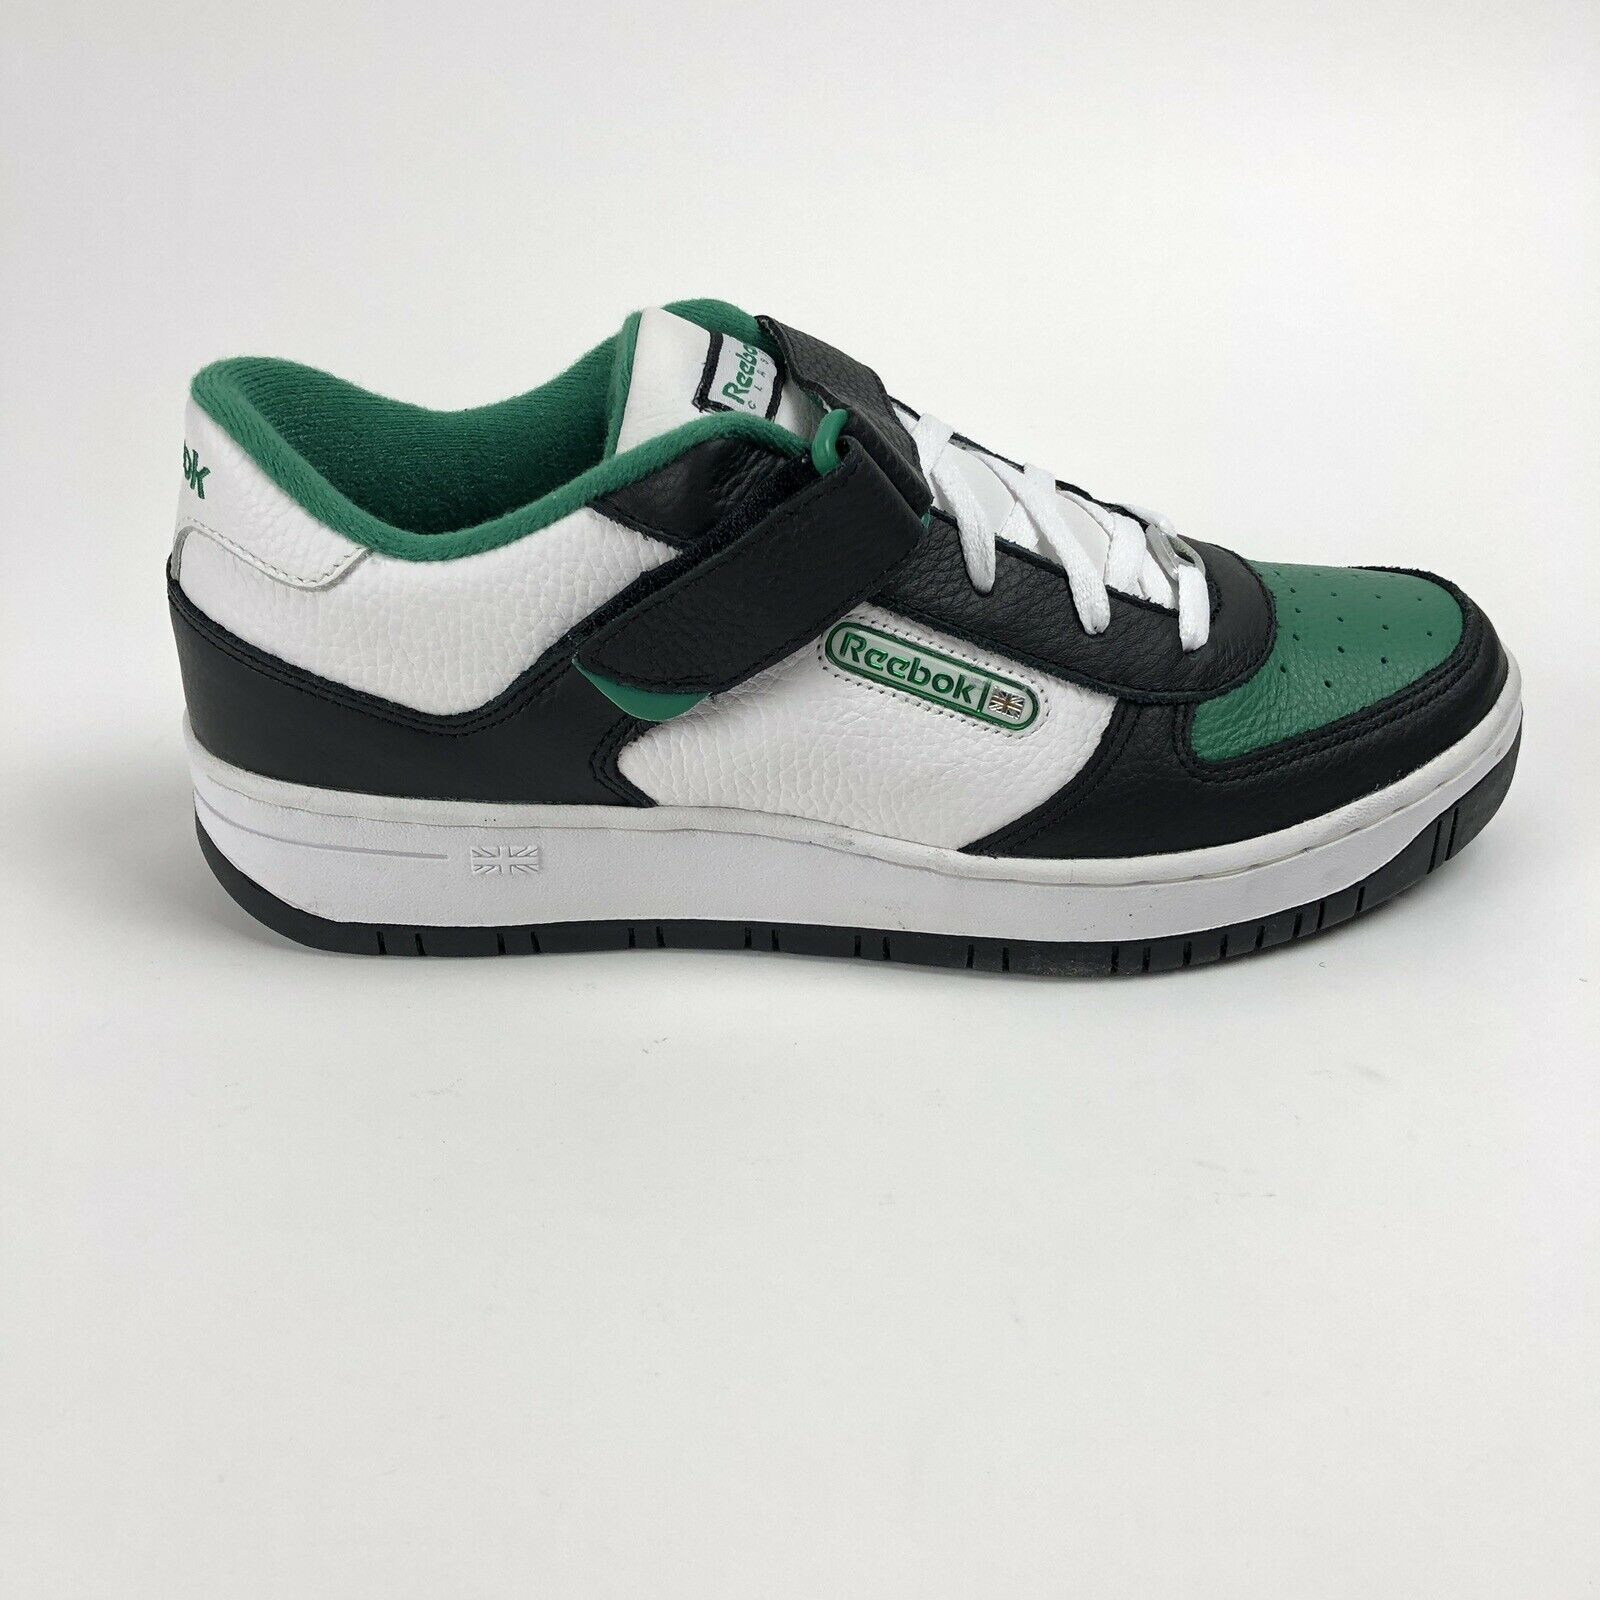 Reebok Classic Amaze Zing Special Edition Men 9.5 Strap Low shoes Green 4-105495